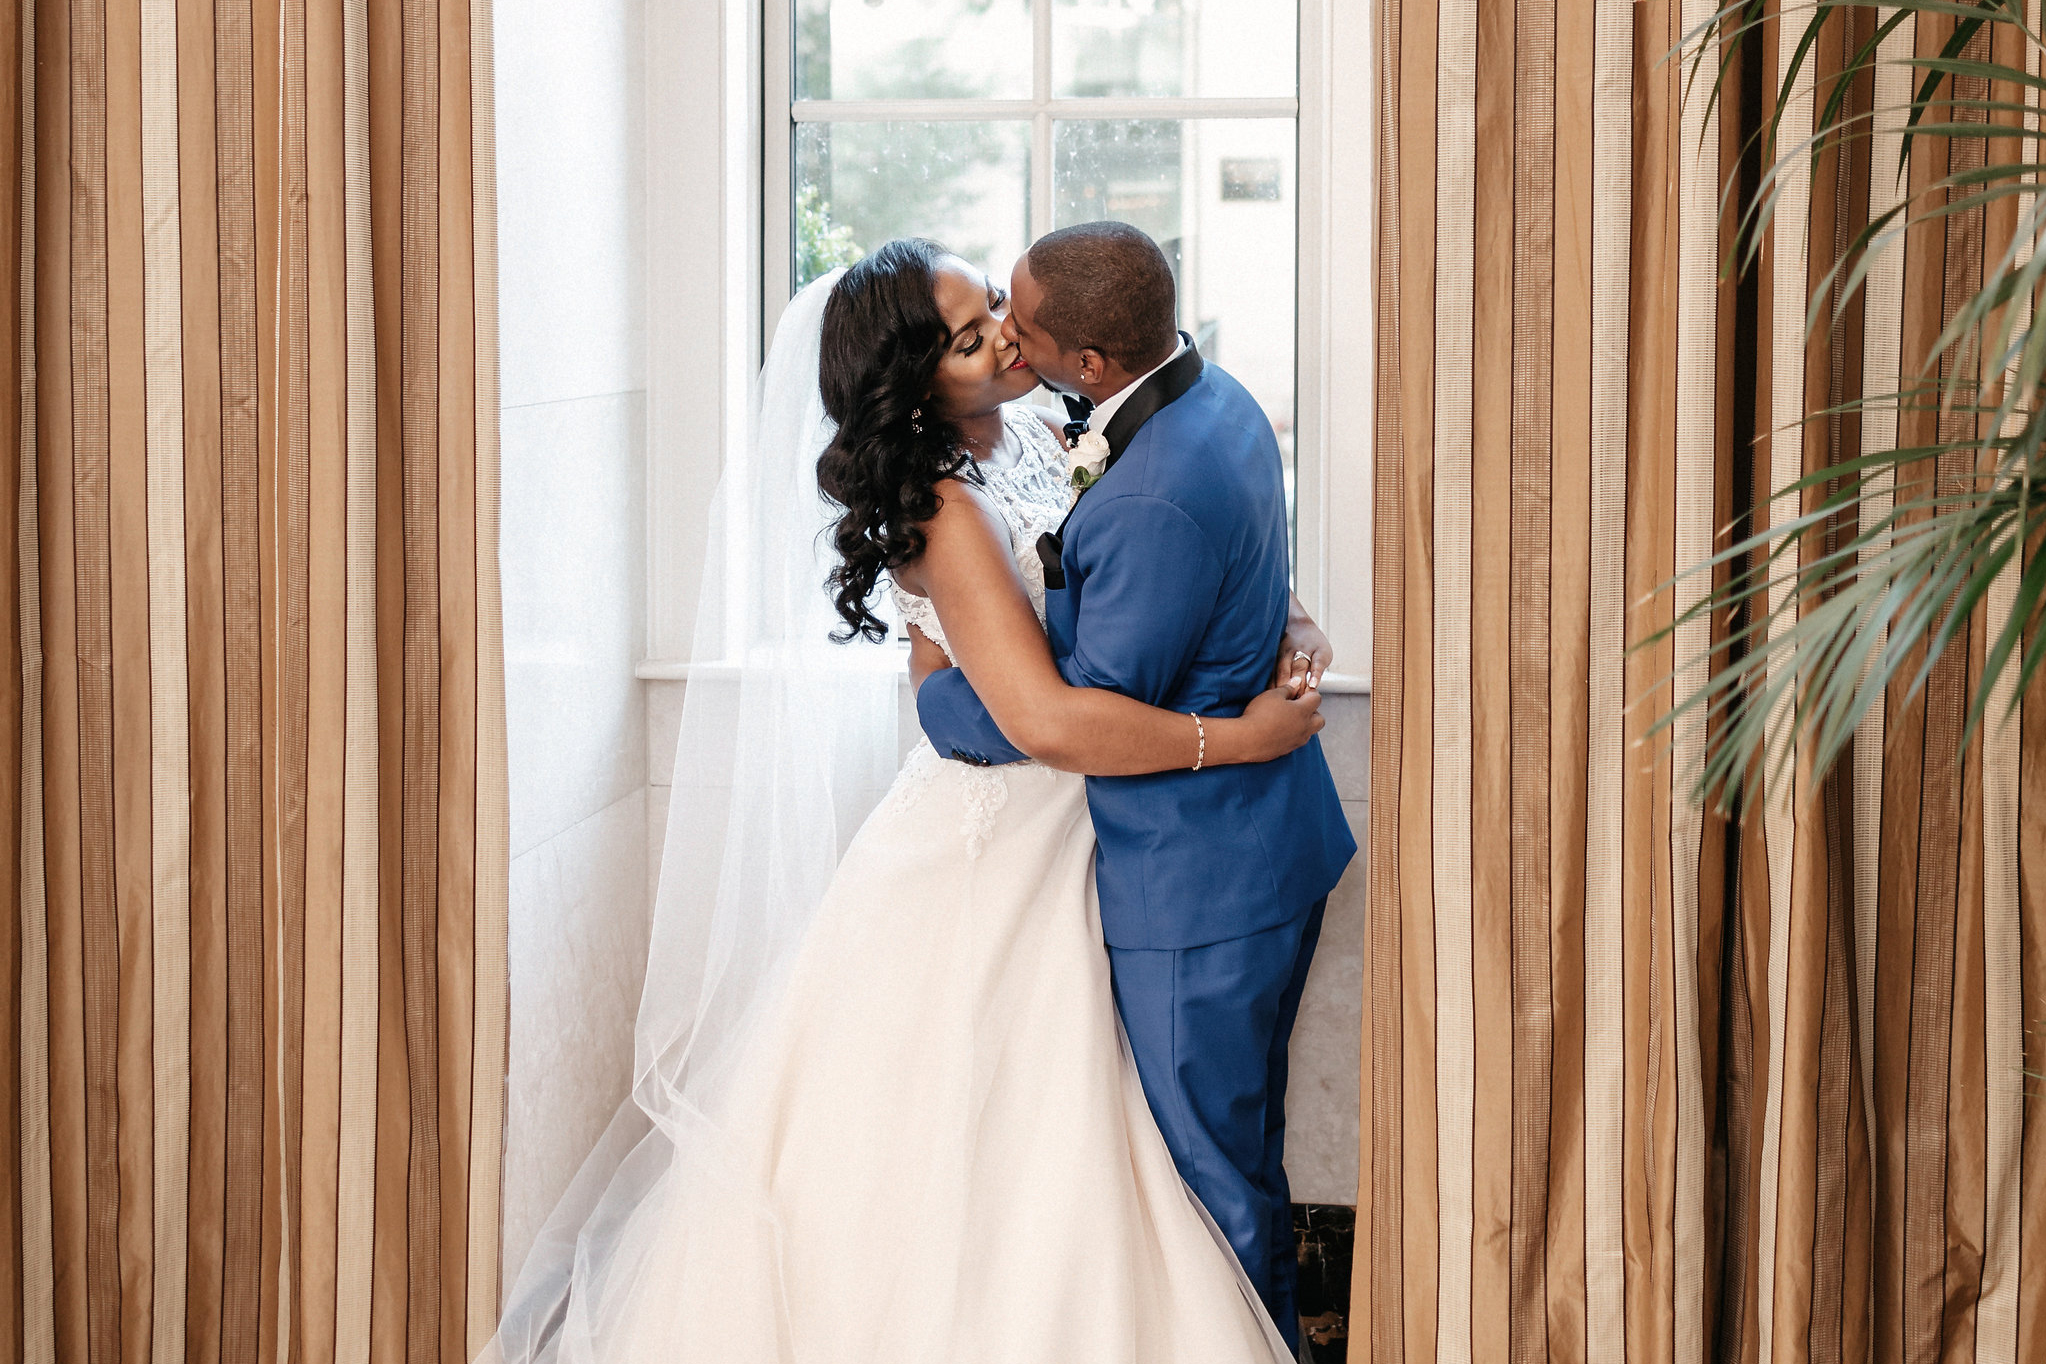 Congratulations, Kendra & Tre - it was a pleasure photographing your wedding day at the beautiful John Marshall Ballrooms! I wish you both so much happiness and best wishes for the future!  Vendors:  Venue: The John Marshall Ballrooms  Wedding Planner/Coordinator:Valerie Matthews with  Storybook Events  Videographer:Marcus Johnson of  Visually Inklined  Florist:  Ivory Morgan-Burton  Cake: WPA Bakery  Band/DJ: Carlton Lilliard Makeup Artist:Melodee Joye of  Joye of Beauty  Hair Artist: Talytha Price of  Healthy Hair Chic   Dress: Allure Bridals, purchased at  Gowns of Grace  Bridesmaids Dresses: Rent the runway  Groom and Groomsmen attire:  Snap Suits  Second Photographer:  Sarah Elizabeth Photography